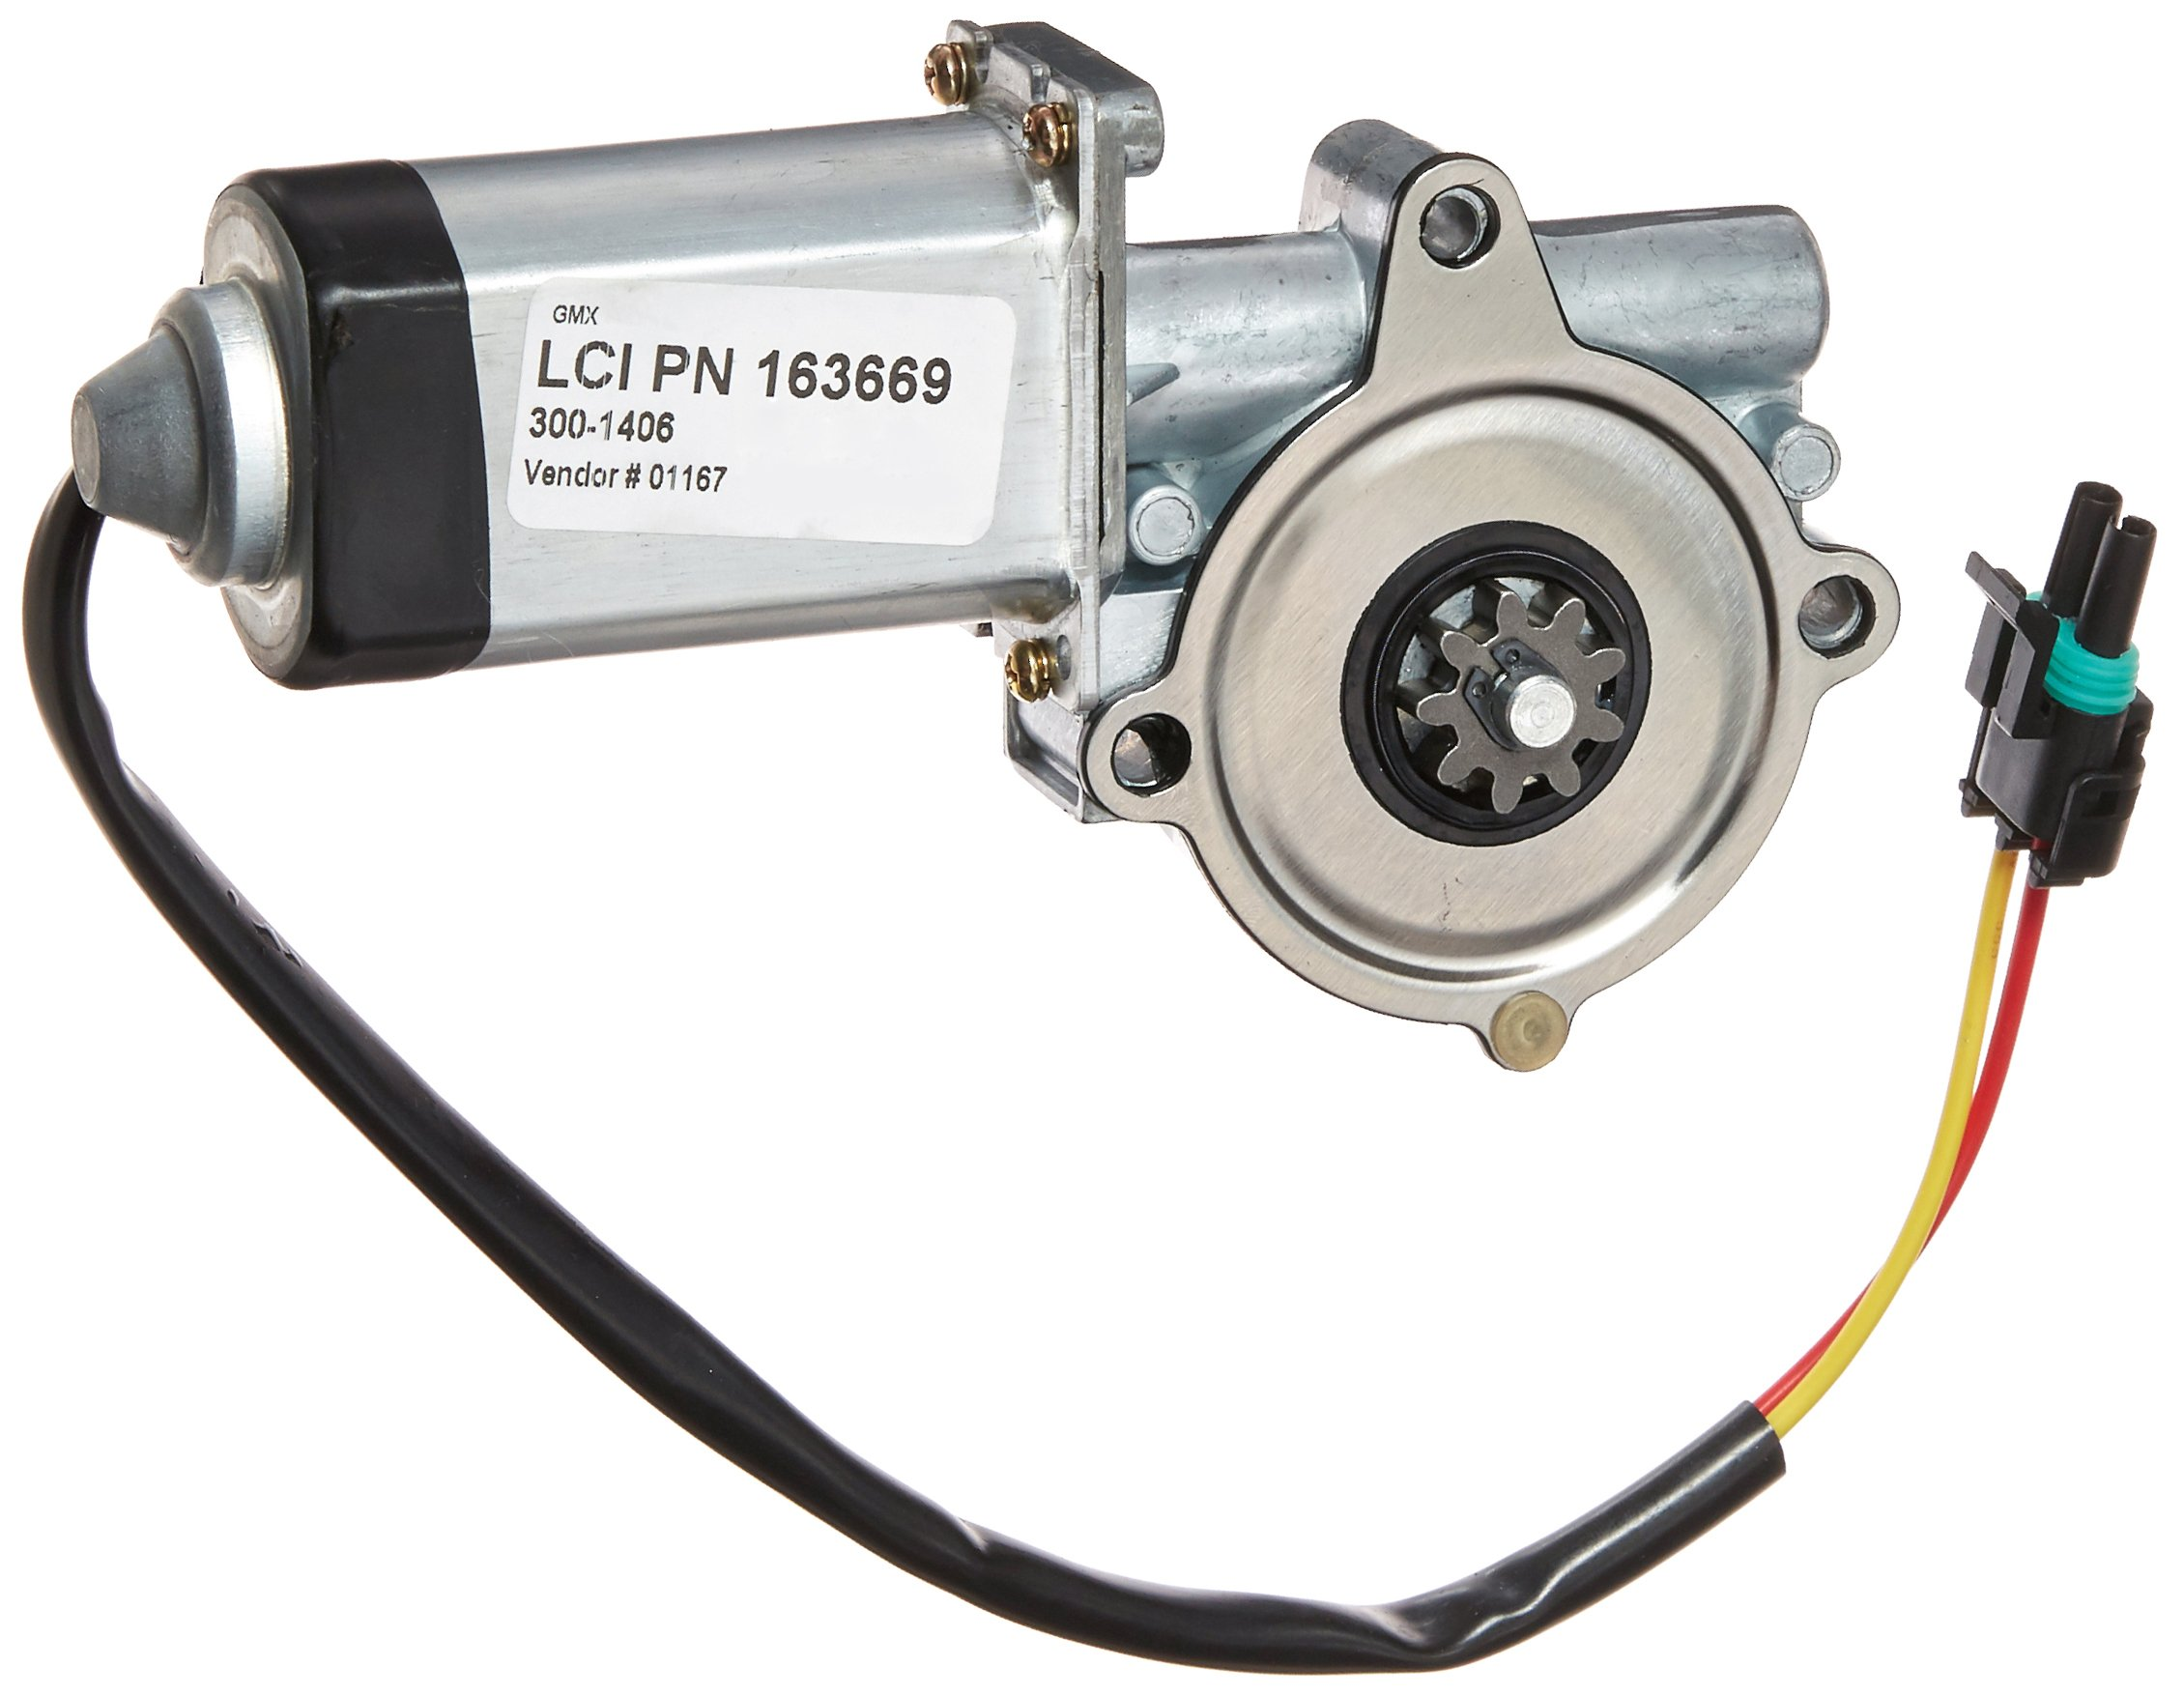 Stromberg Carlson SP1636669 Electric Step Motor